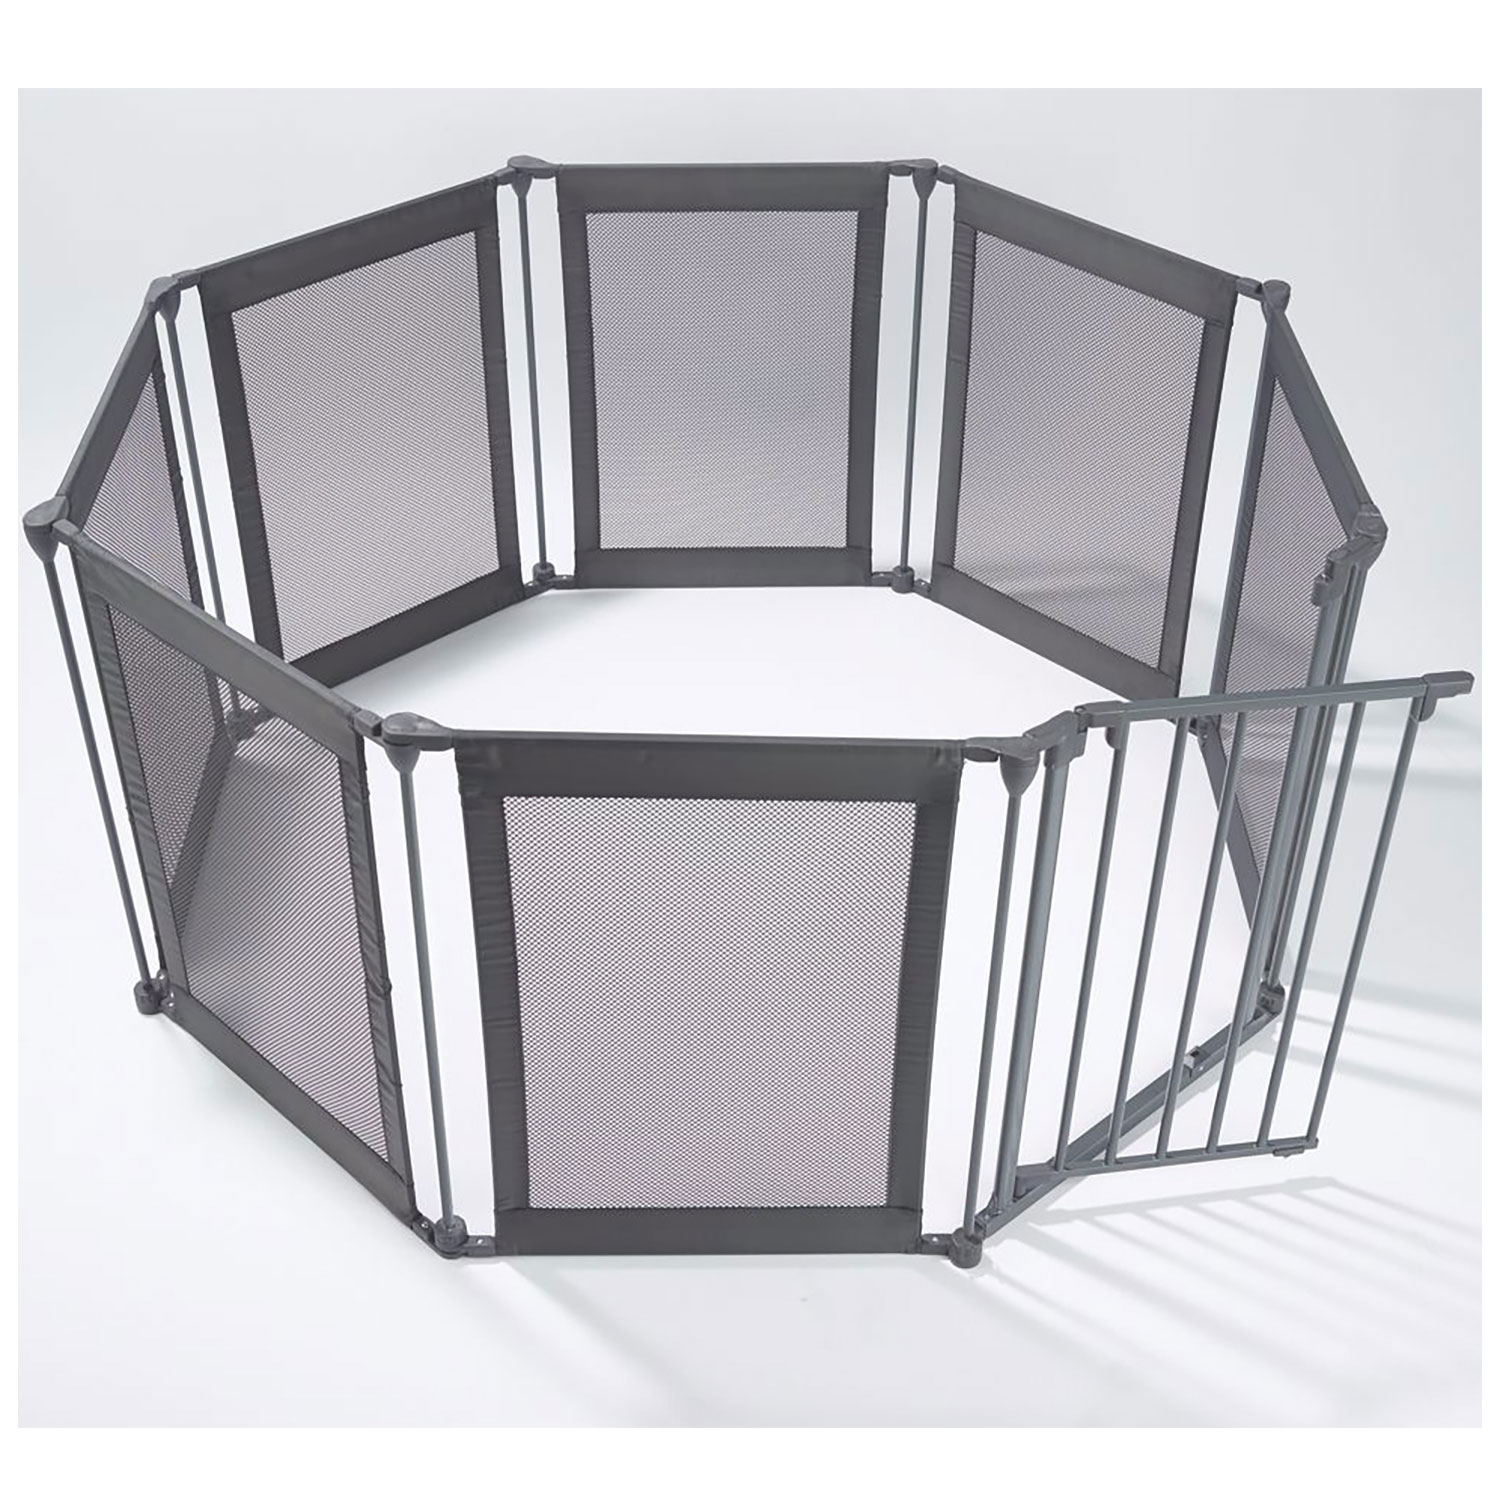 One Step Ahead Mesh Play Pen with Safety Gate Indoor and Outdoor, Portable Folds and Locks by One Step Ahead